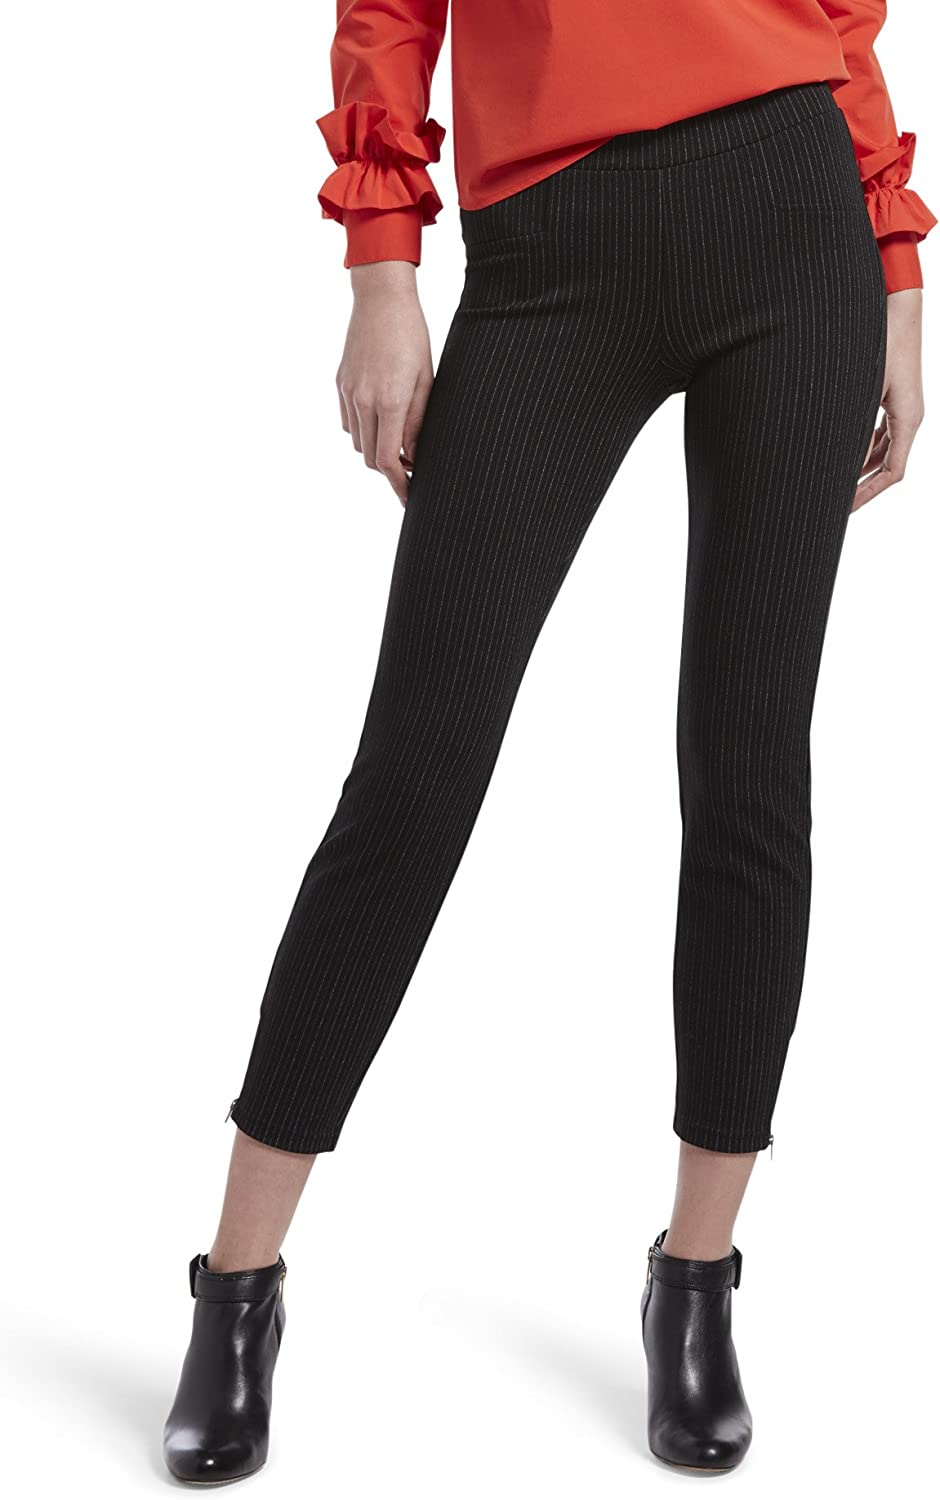 HUE Women's Plus Same day shipping Size Max 77% OFF Loafer Legging Assorted Skimmer